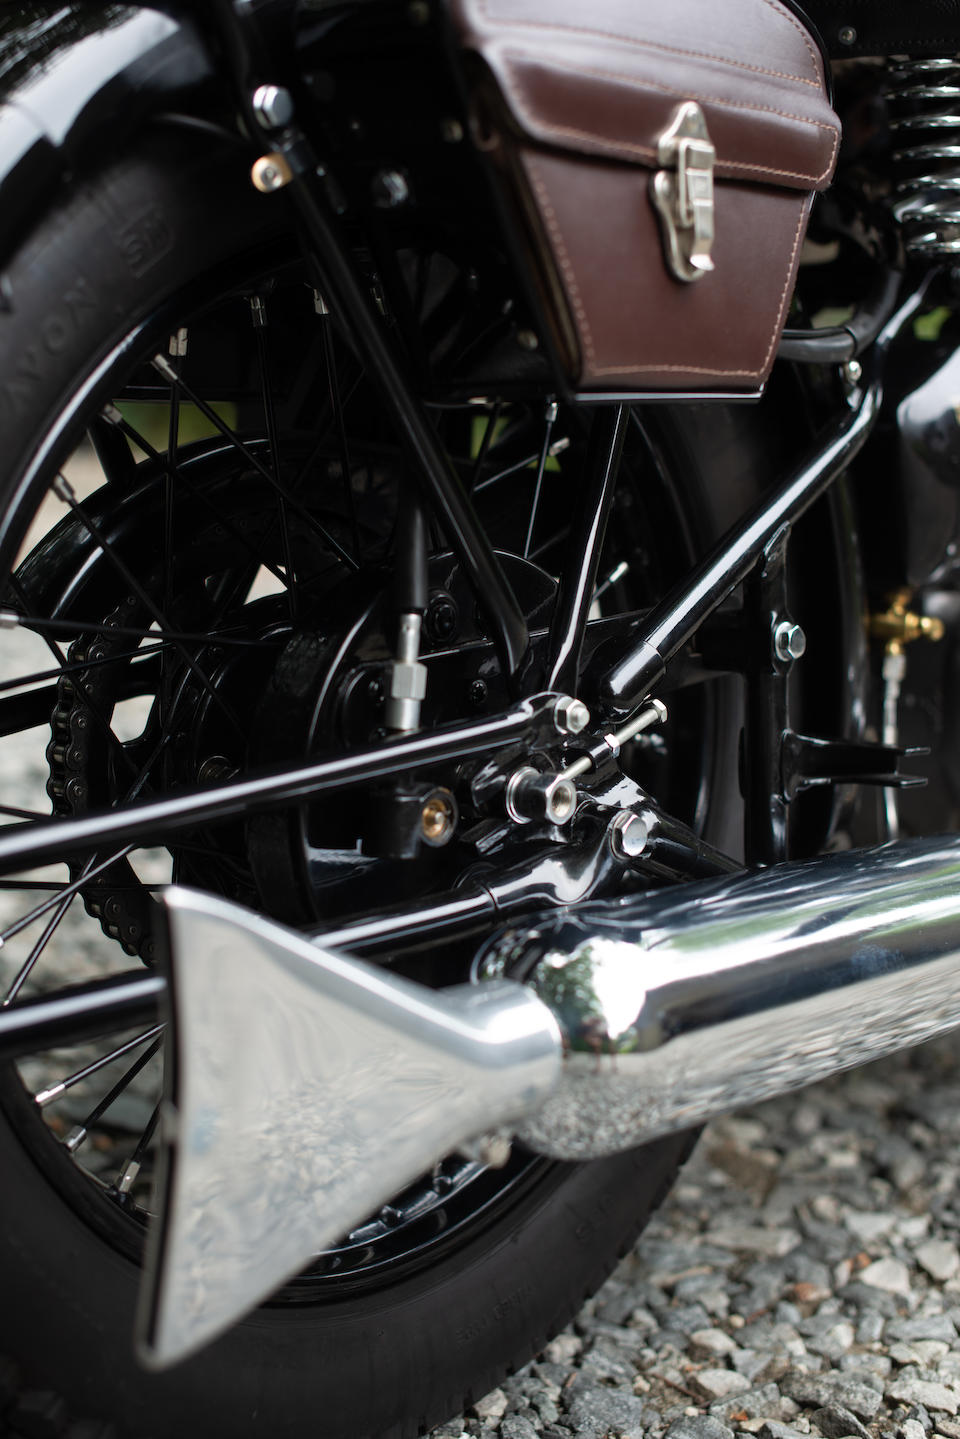 Meticulously restored concours award winner,1936 Brough Superior 982cc SS80 Frame no. M8/1604 Engine no. BS/X4 4328